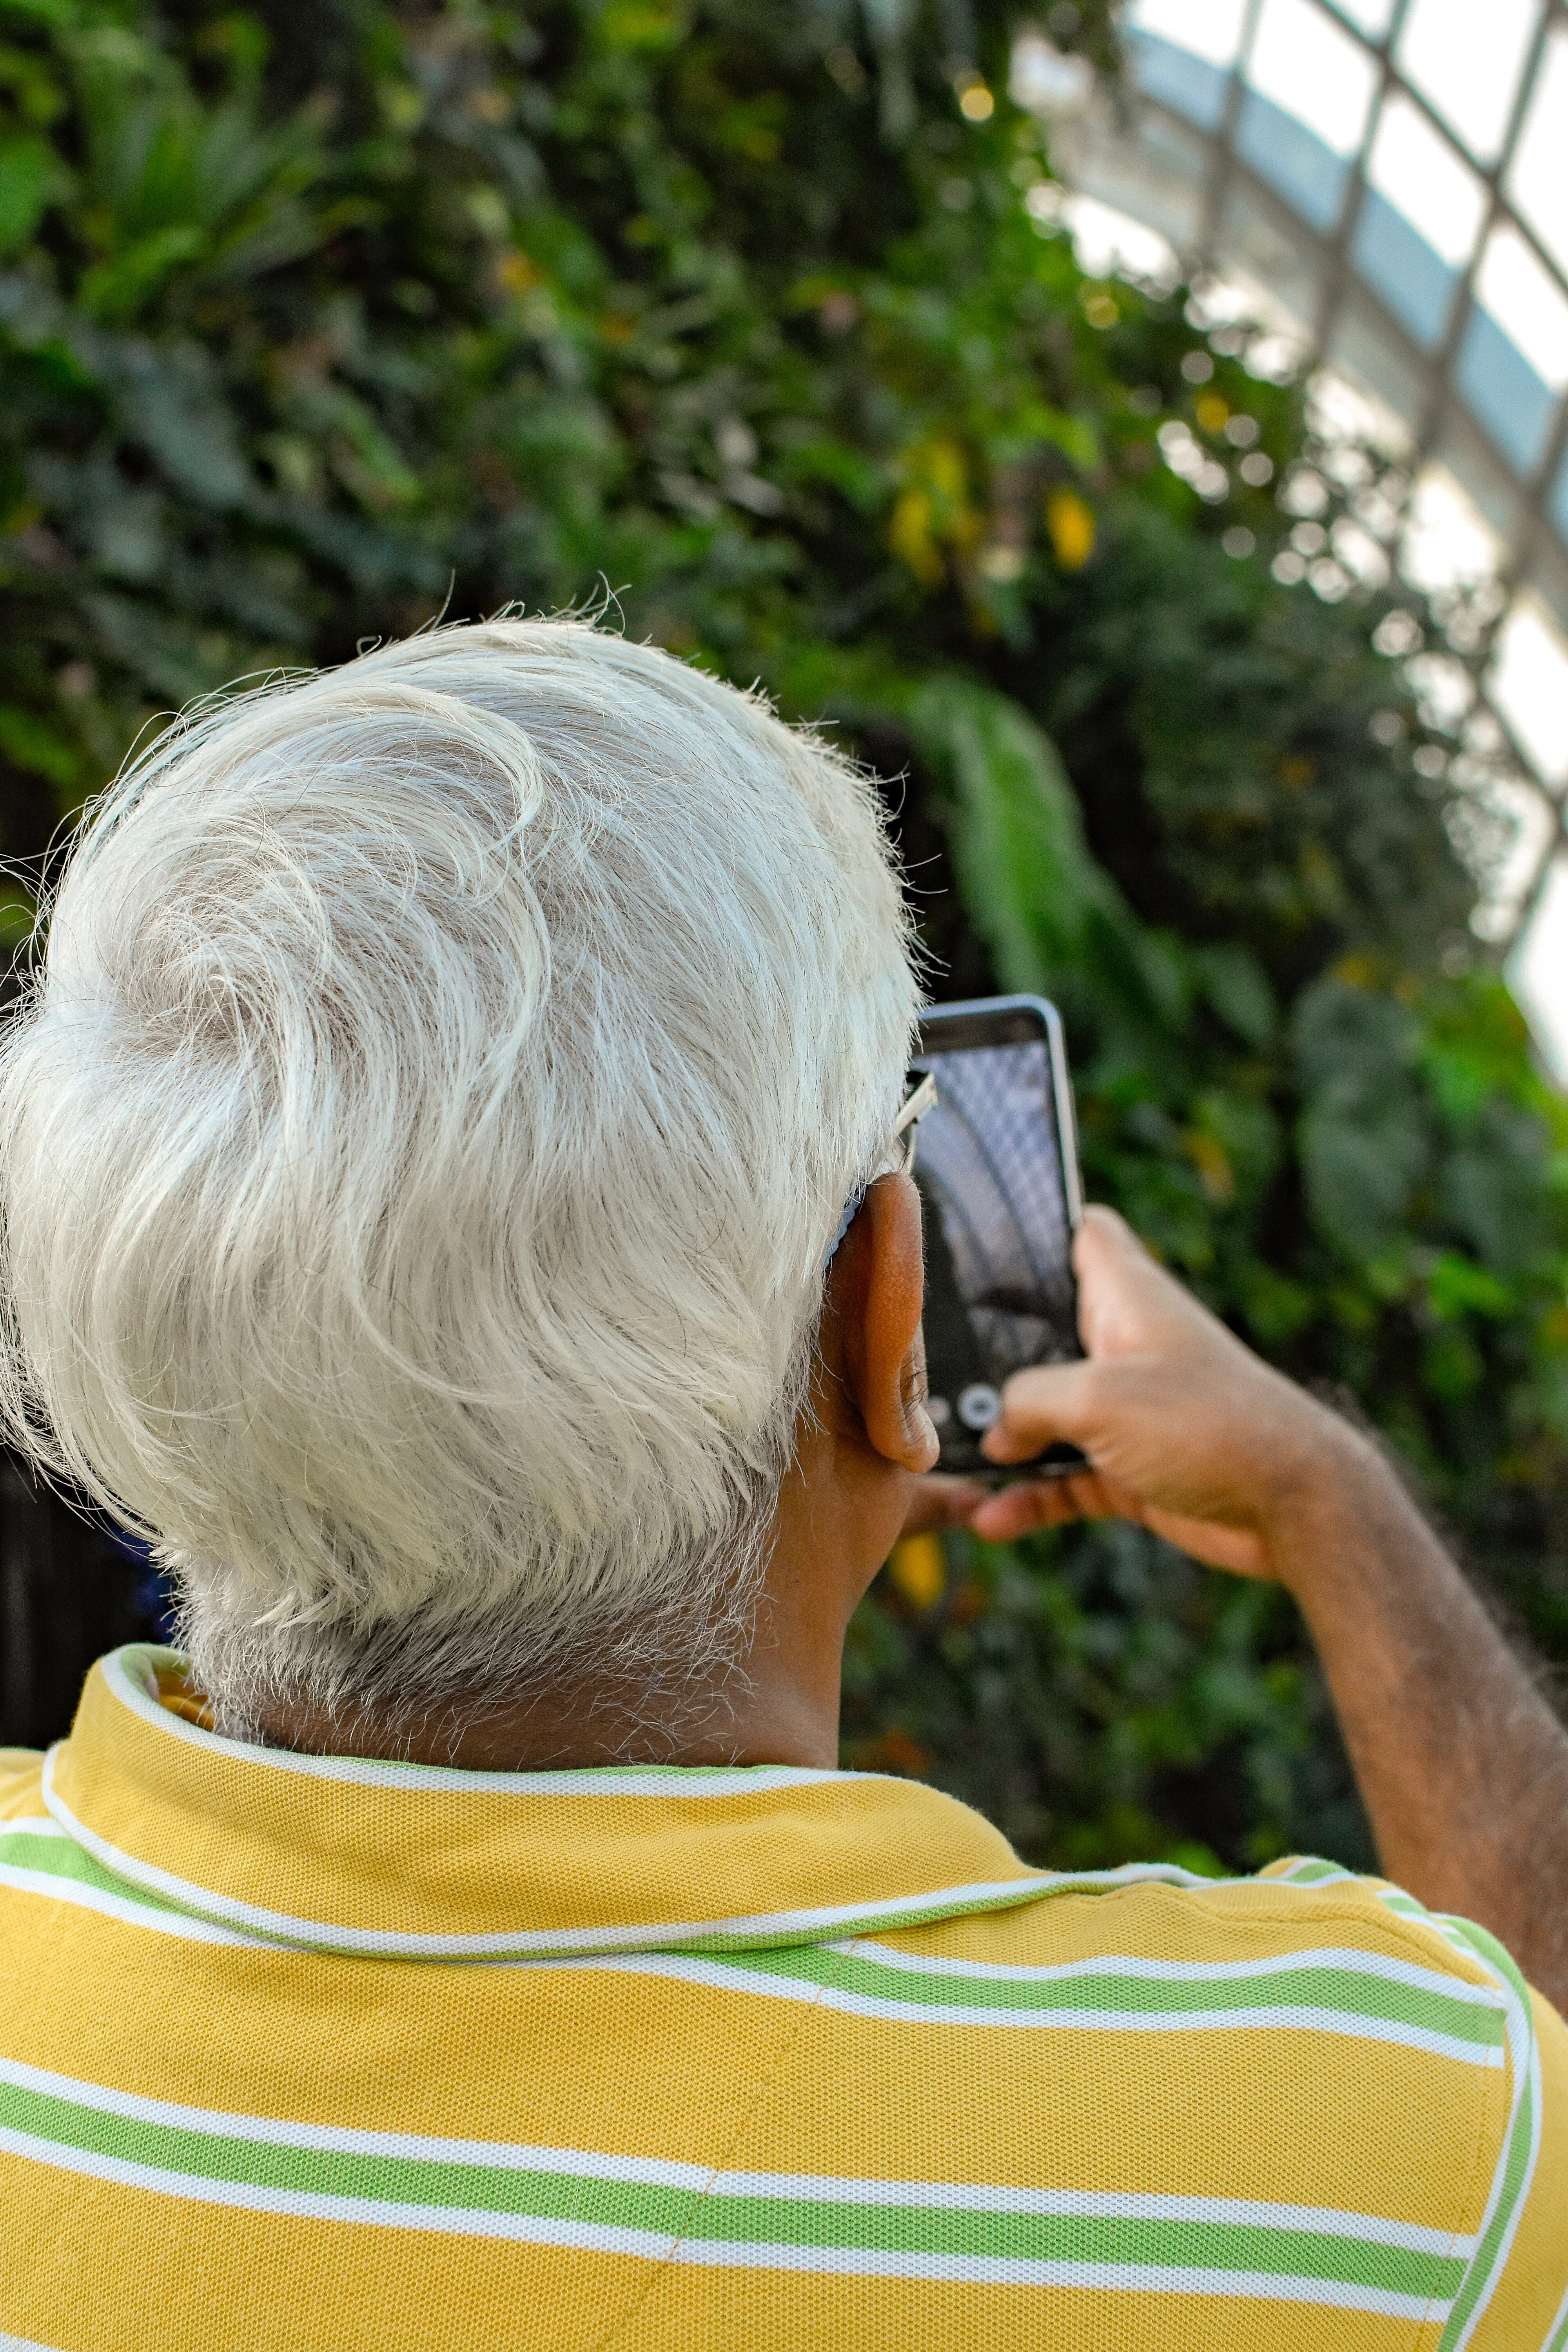 Loneliness is an epidemic, and we can turn to technology to fix it